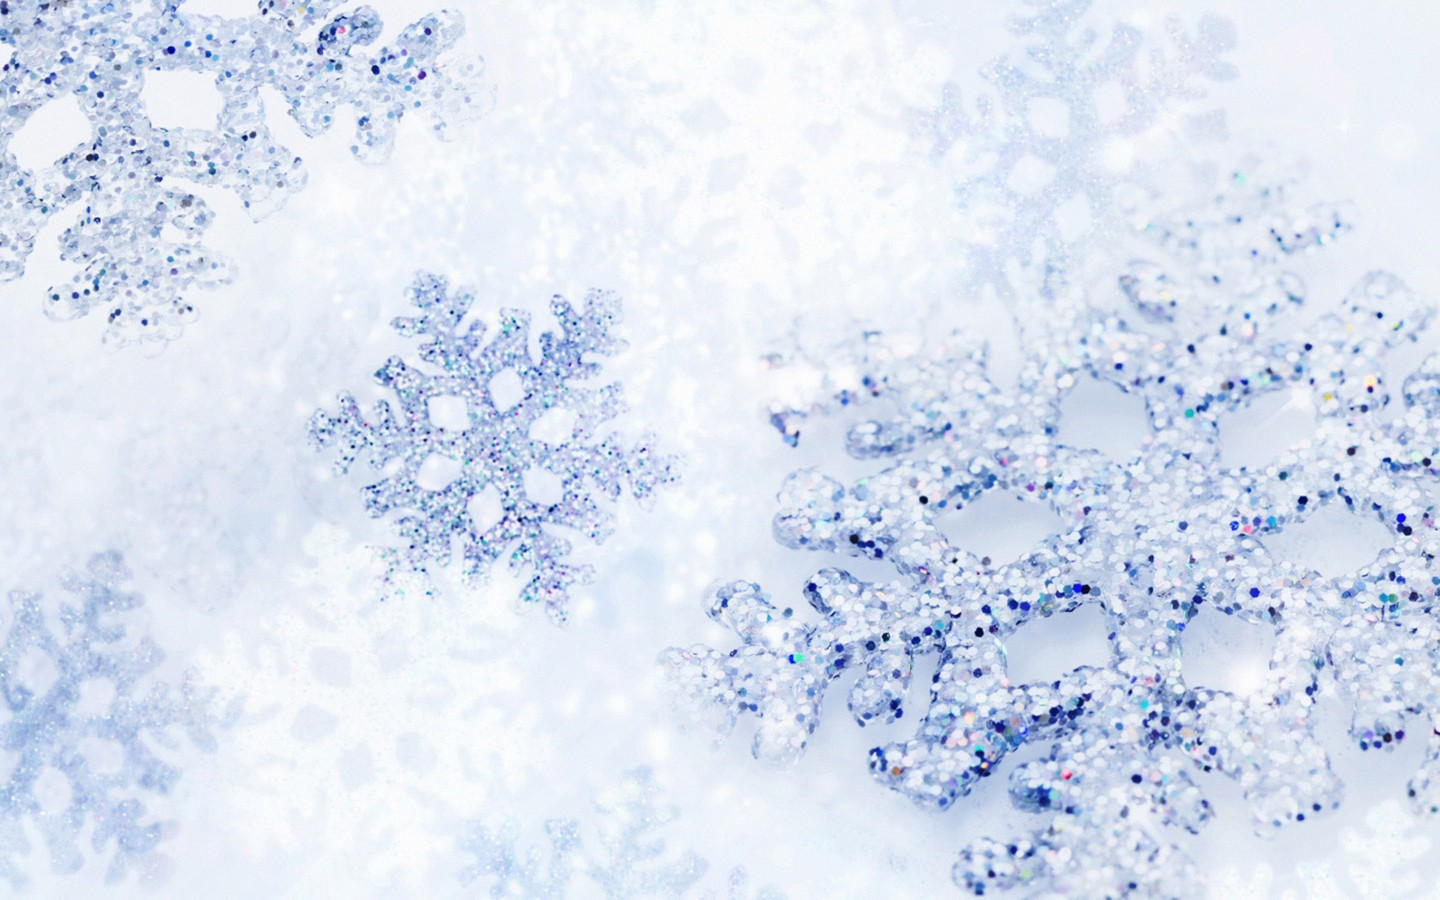 Winter holiday snow background christmas abstract backdrop with